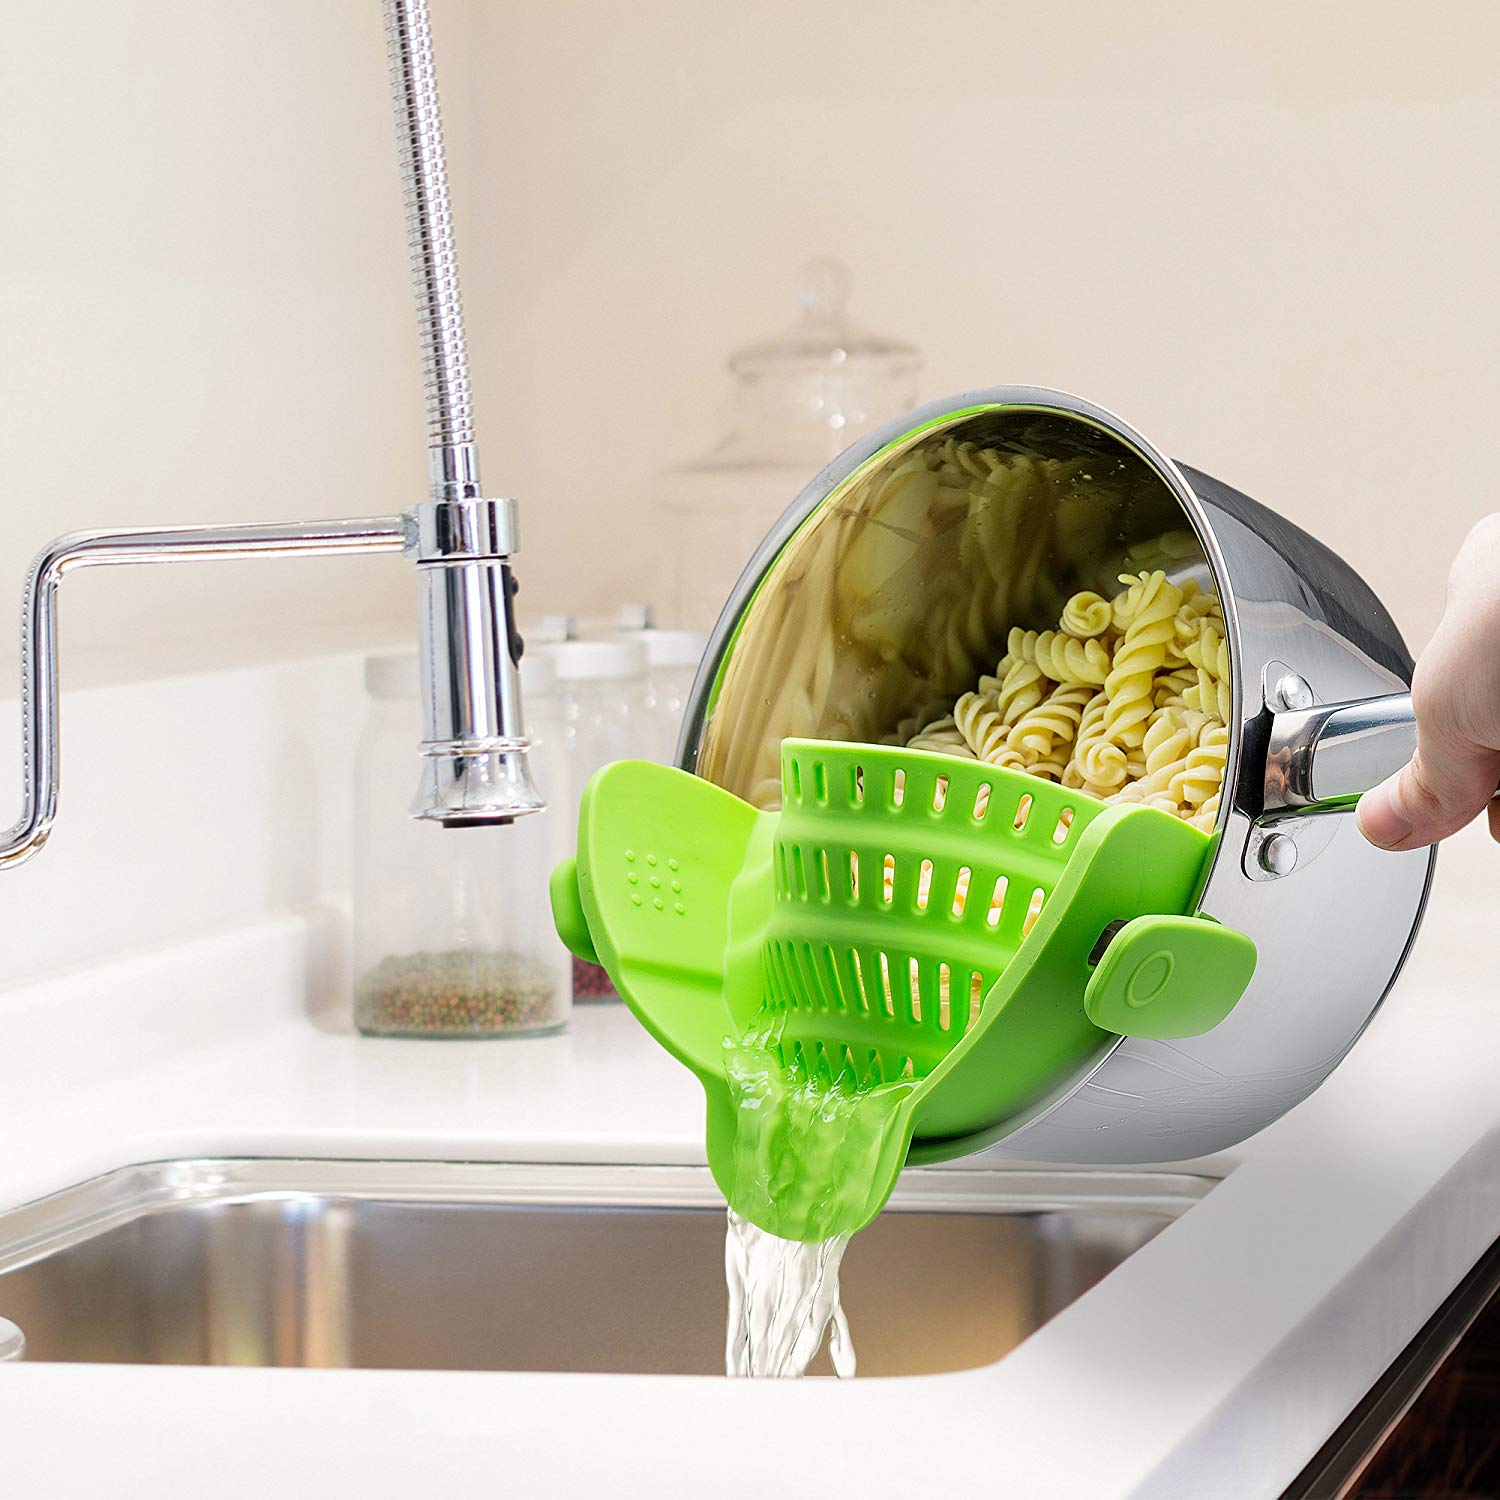 15 Life-Changing Kitchen Gadgets You Can Buy on Amazon